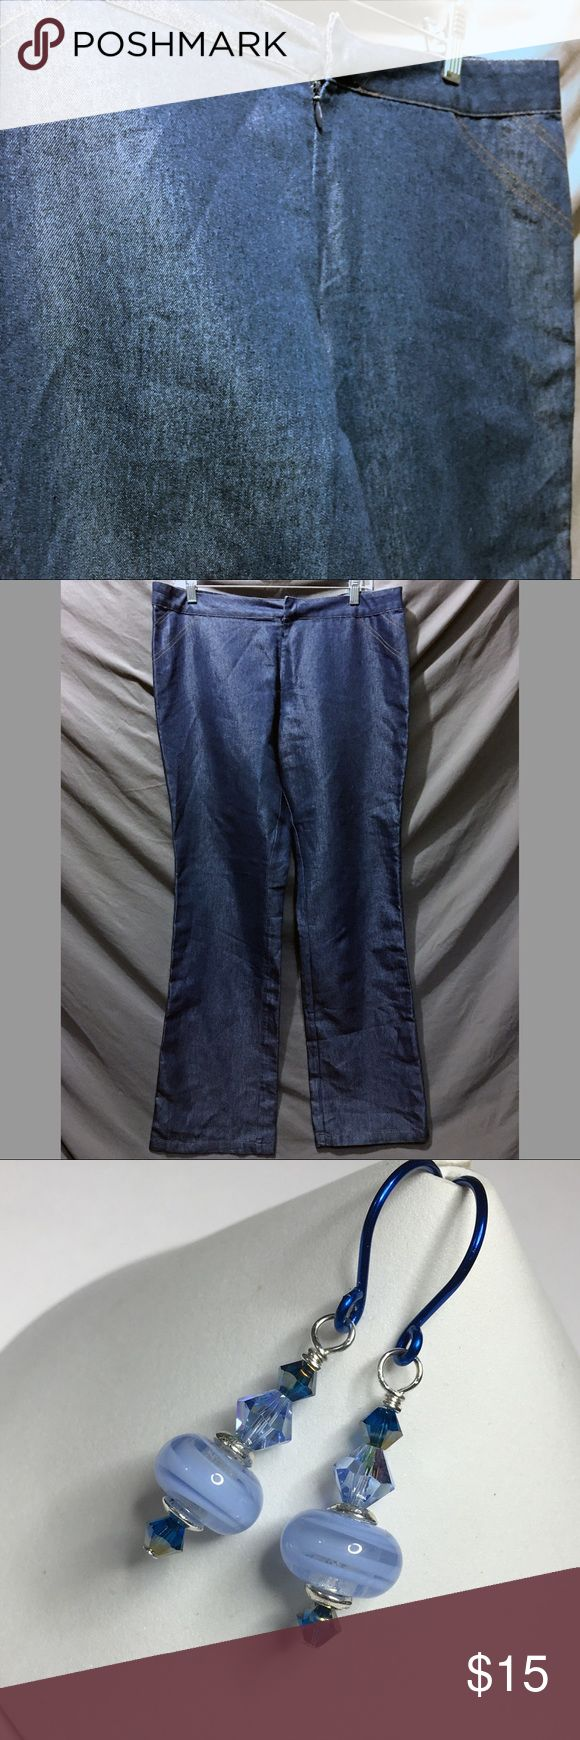 Old Navy Shiny Denim Colored Pants 14 NWOT New w/o Tags; These Old Navy pants, size 14, look like jeans, but they're lightweight and comfy. The shiny denim colored fabric is sure to turn heads. 65% cotton, 35% rayon. Includes a matching pair of my handmade earrings. No animal hair, cigarette smoke or perfume smell. Use the OFFER button to make me an offer. I'm ready to sell! Thank you! Measured flat: Across the waist 18 inches; rise 10.5 inches; inseam 33 inches; length 40 inches; leg…